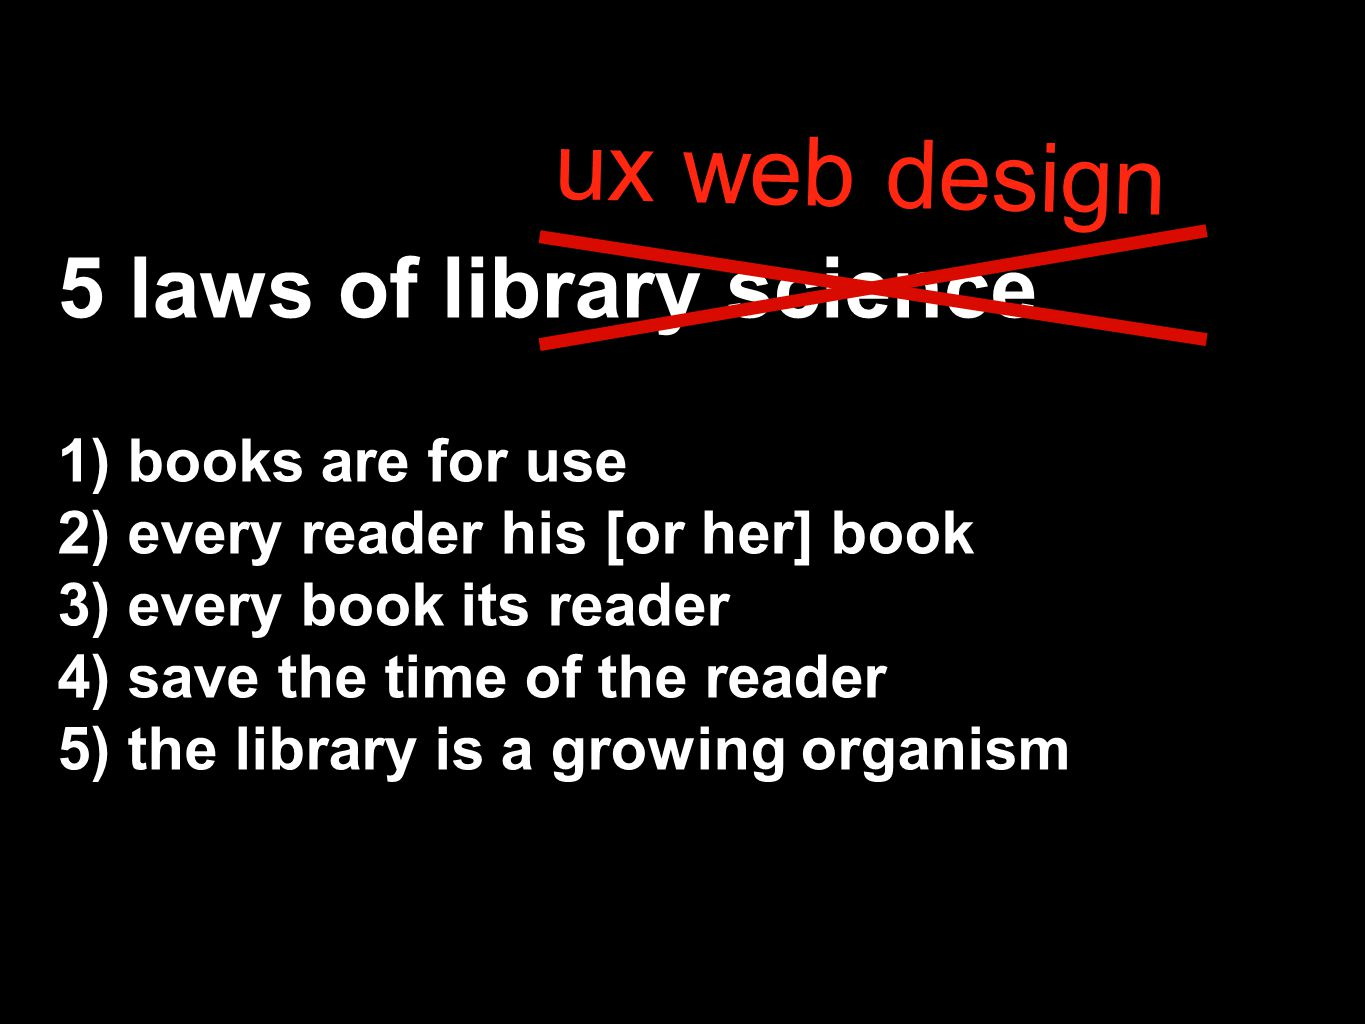 5 laws of library science 1) books are for use 2) every reader his [or her] book 3) every book its reader 4) save the time of the reader 5) the library is a growing organism